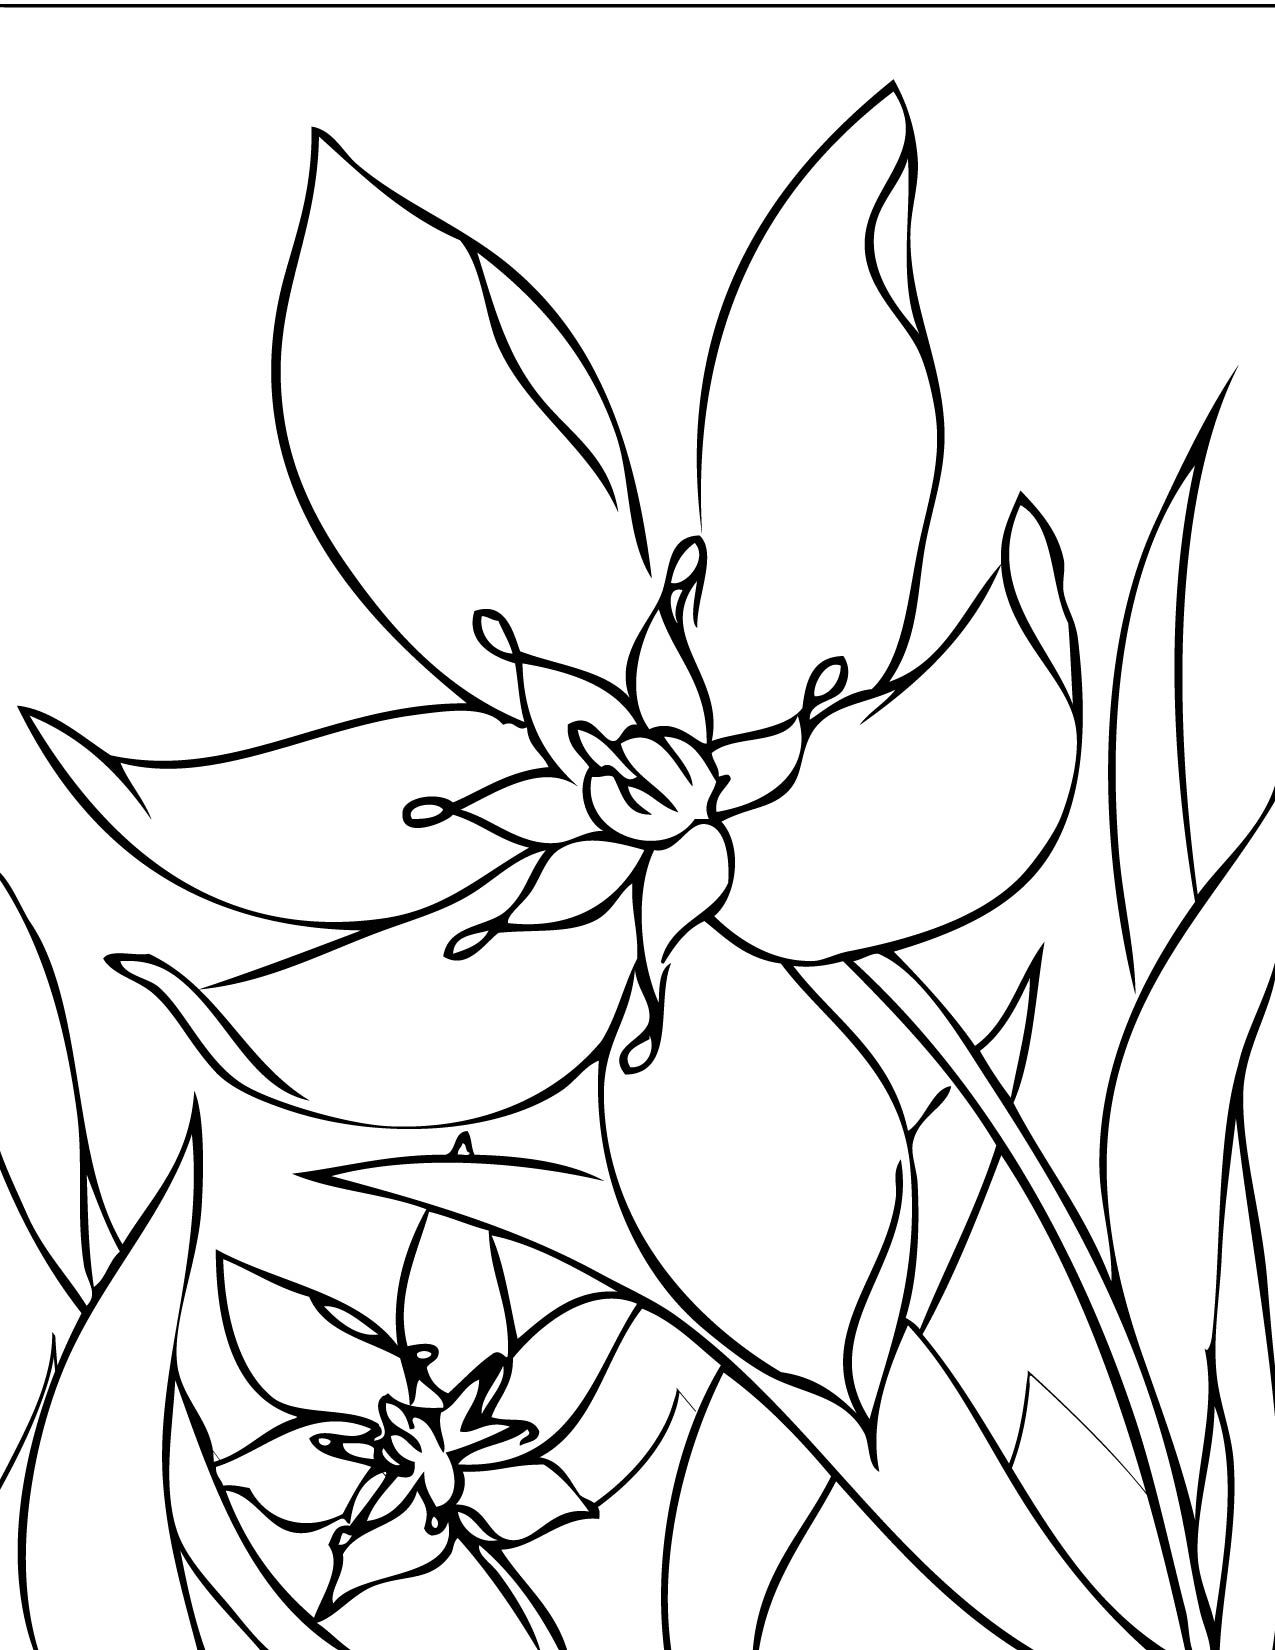 Printable coloring pages for adults flowers - Flower Page Printable Coloring Sheets Print This Page Spring Flowers Coloring Pages Coloring